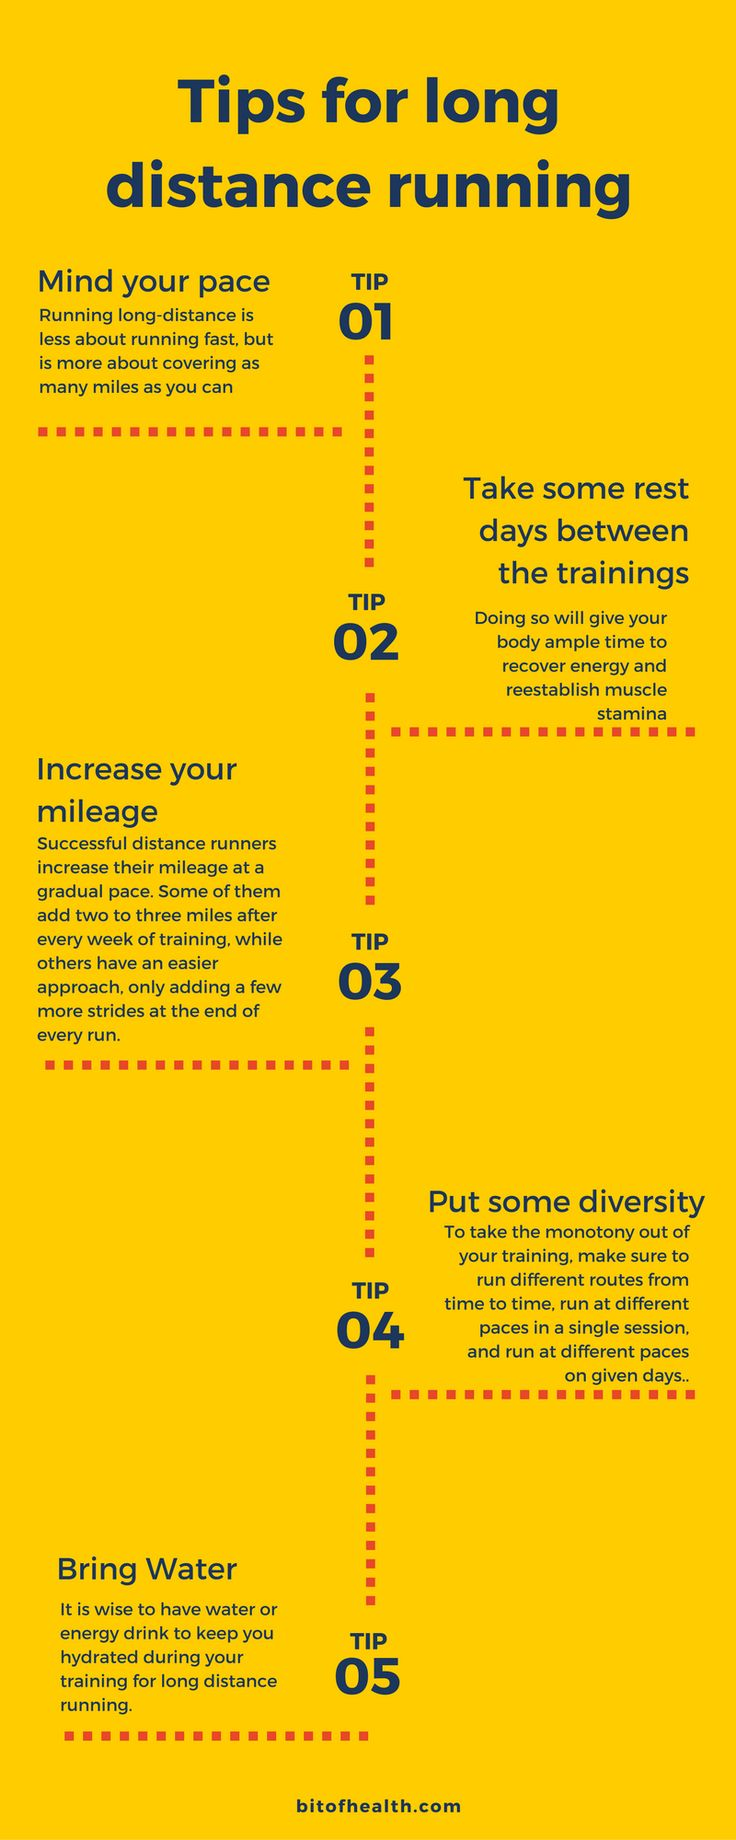 Tips for Long Distance Running | Posted By: AdvancedWeightLossTips.com